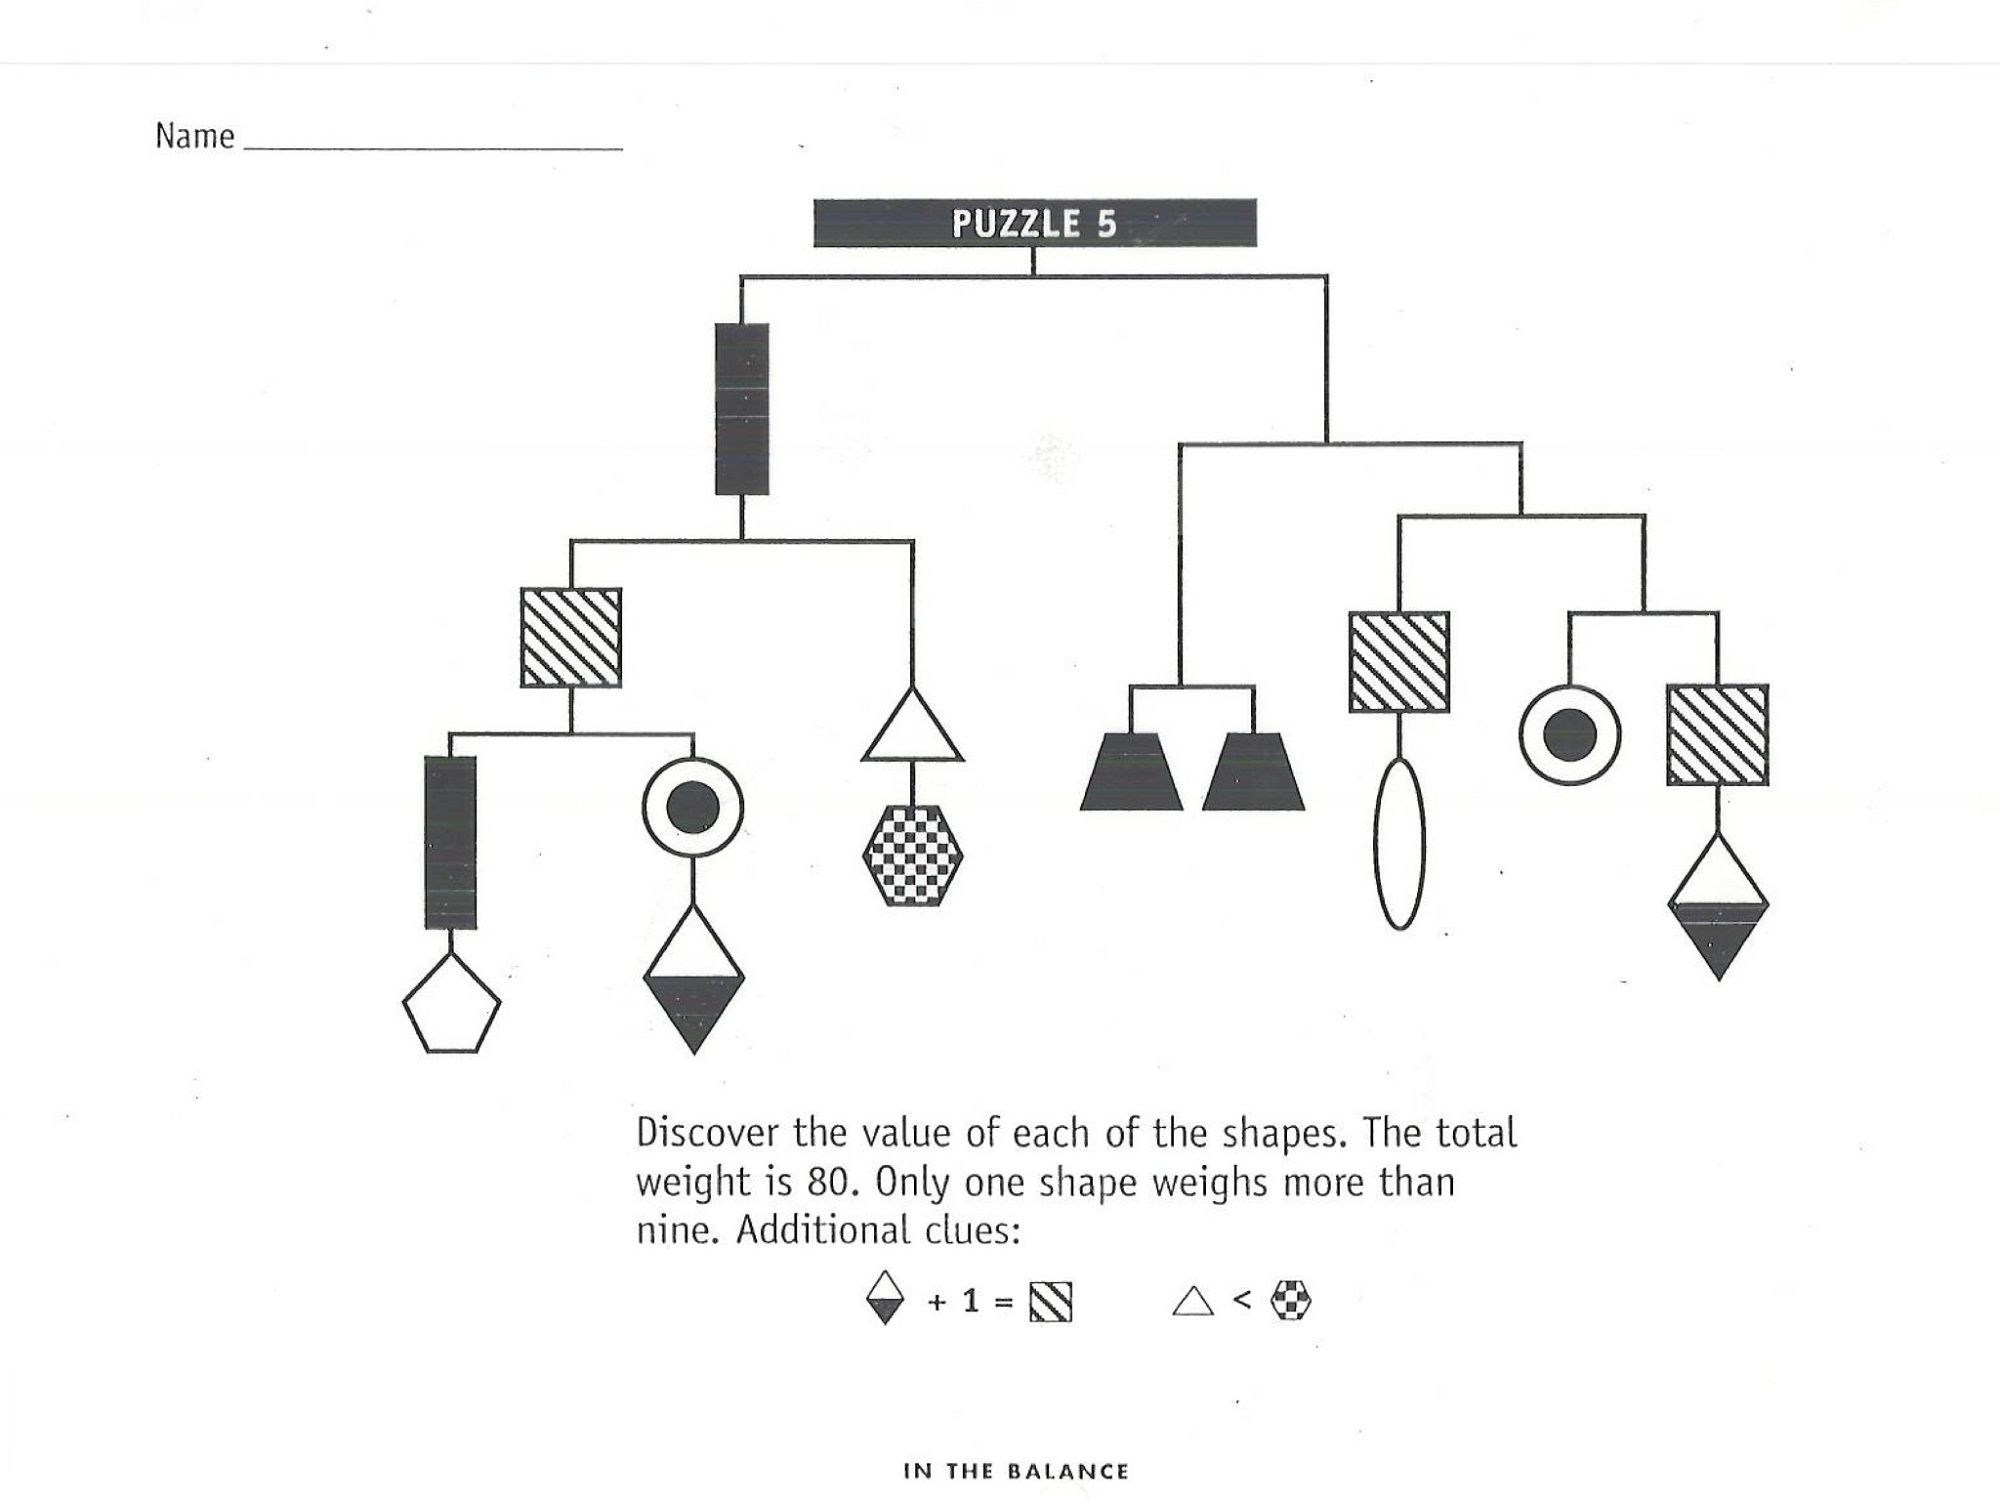 Balancing Equations Print Go Worksheets For Extra Practice And